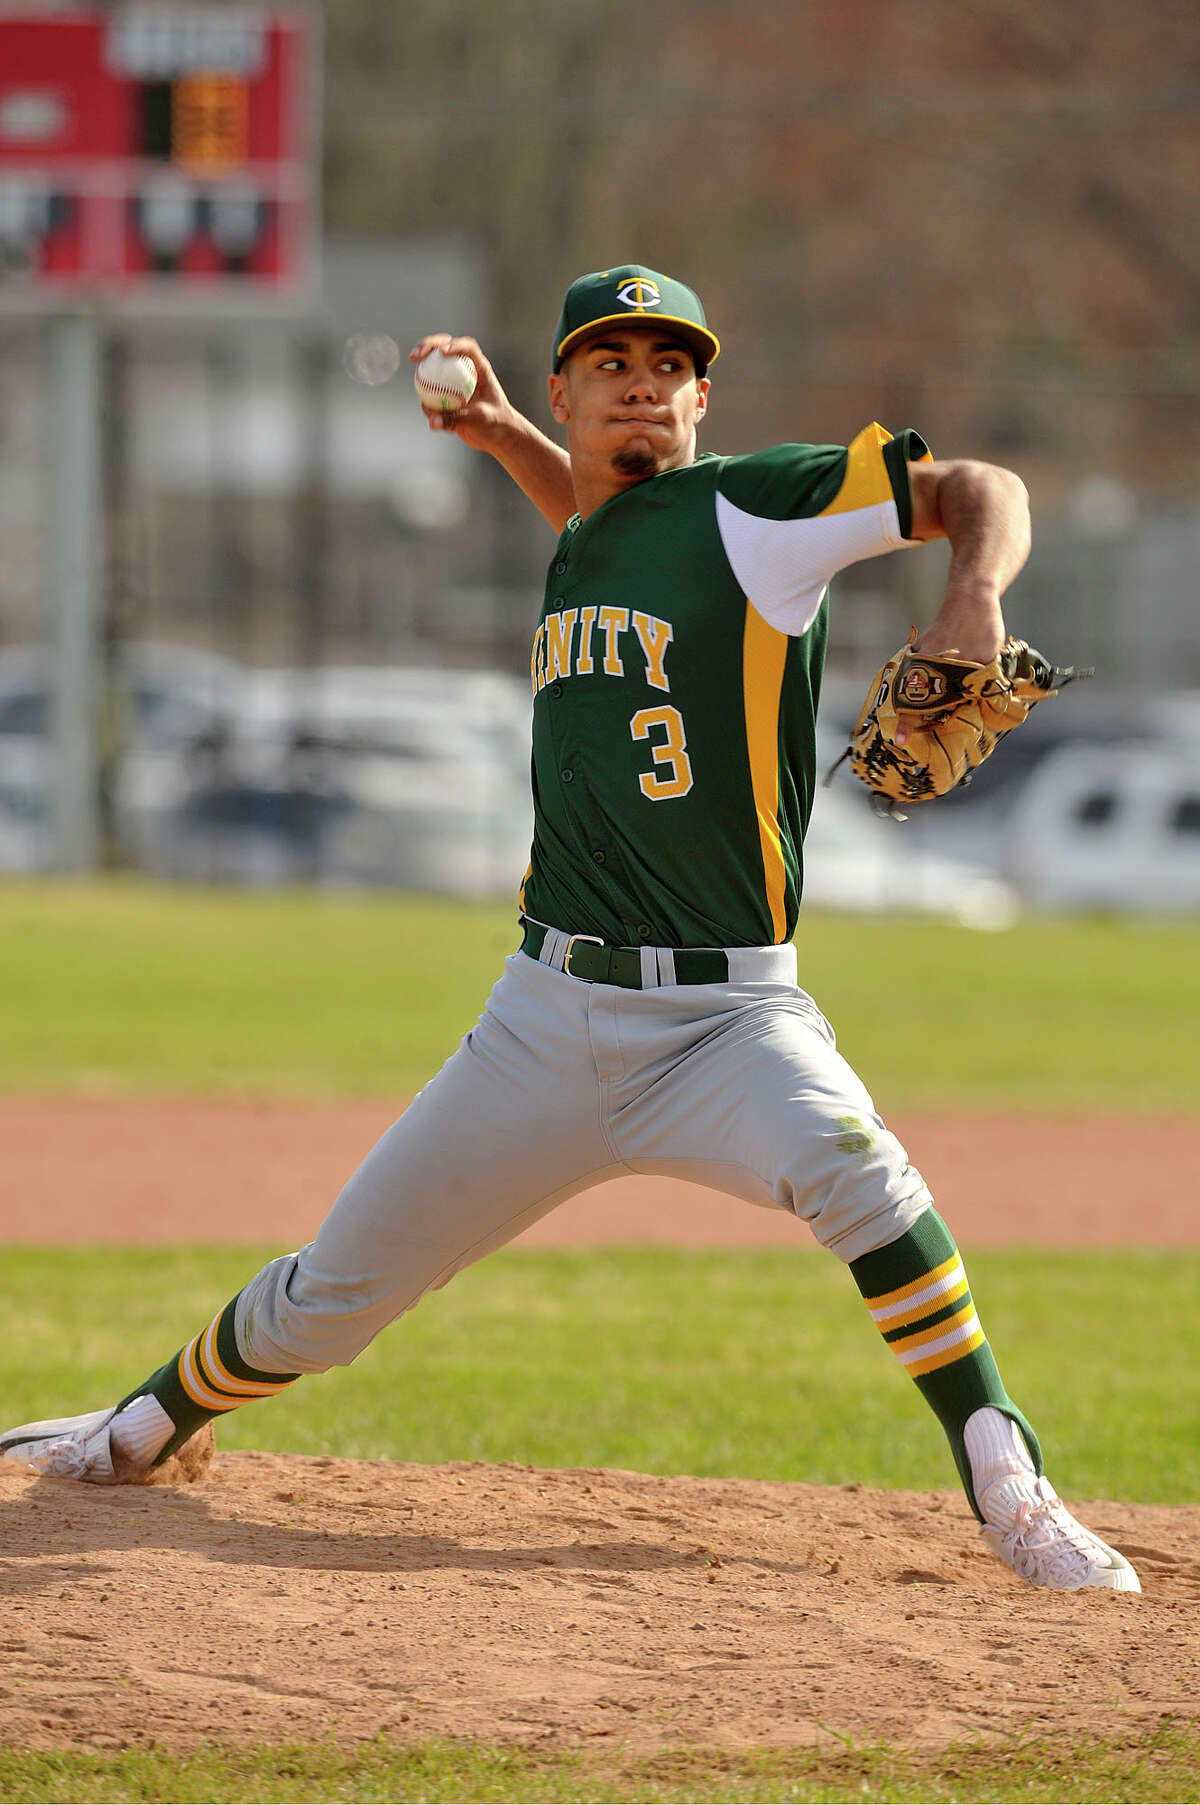 Randy Polonia was the starting pitcher for Trinity Catholic going the full seven innings for a 6-0 shutout at Stamford High School in Stamford, Conn., on Monday, April 13, 2015.